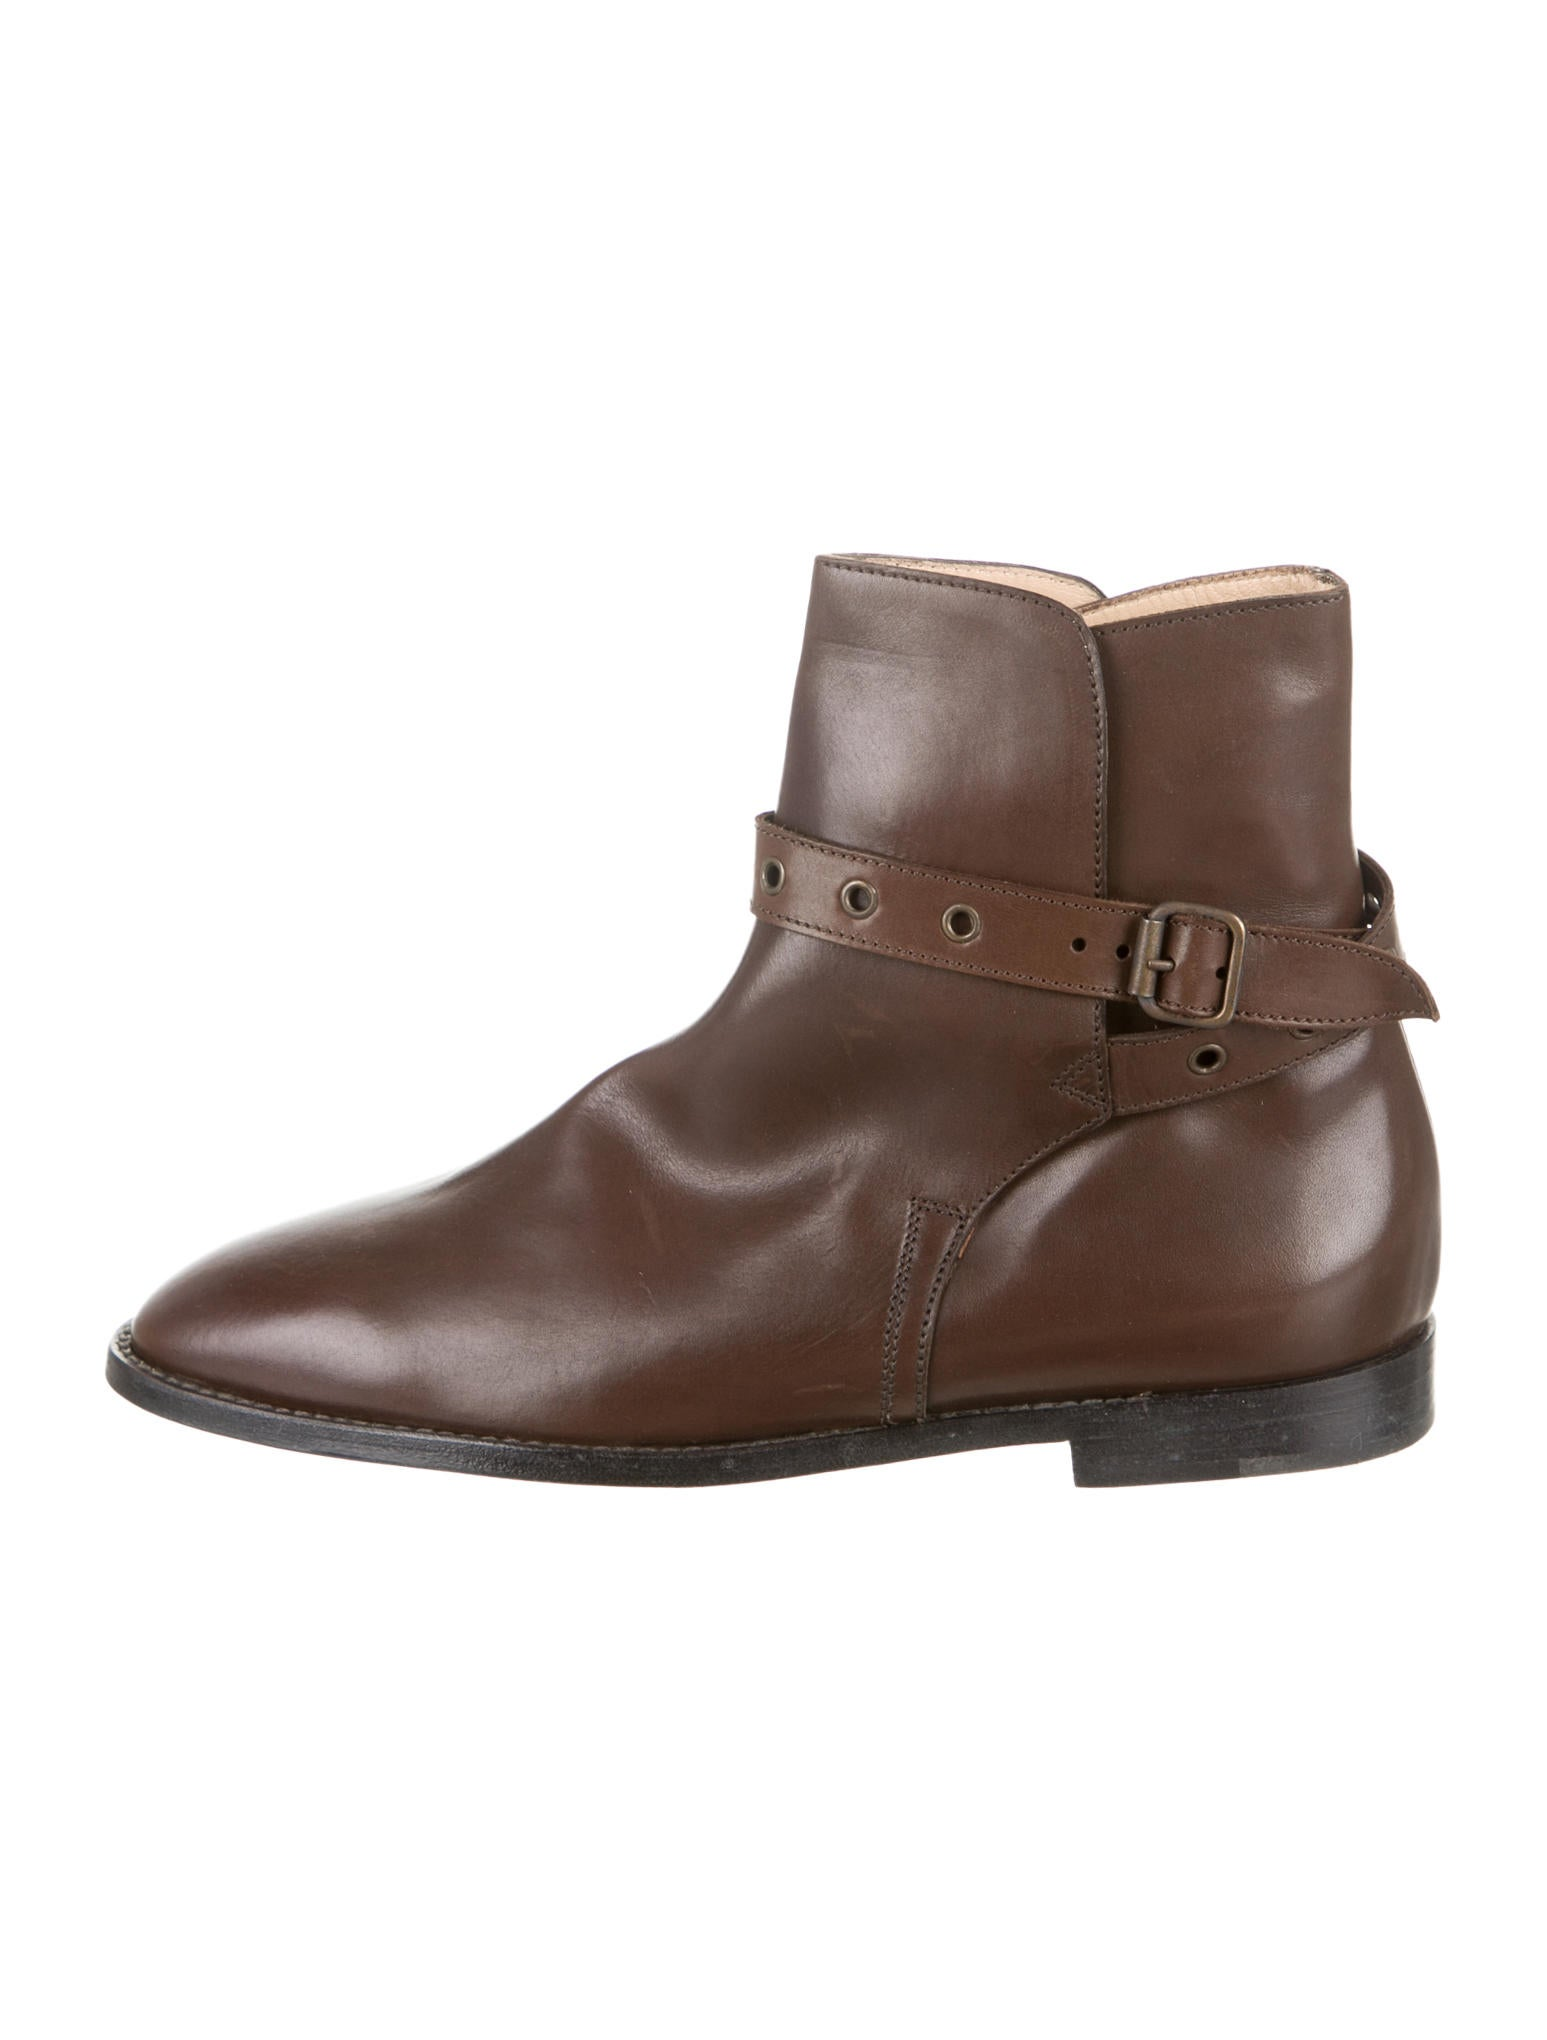 Manolo blahnik boots shoes moo33226 the realreal for Shoes by manolo blahnik